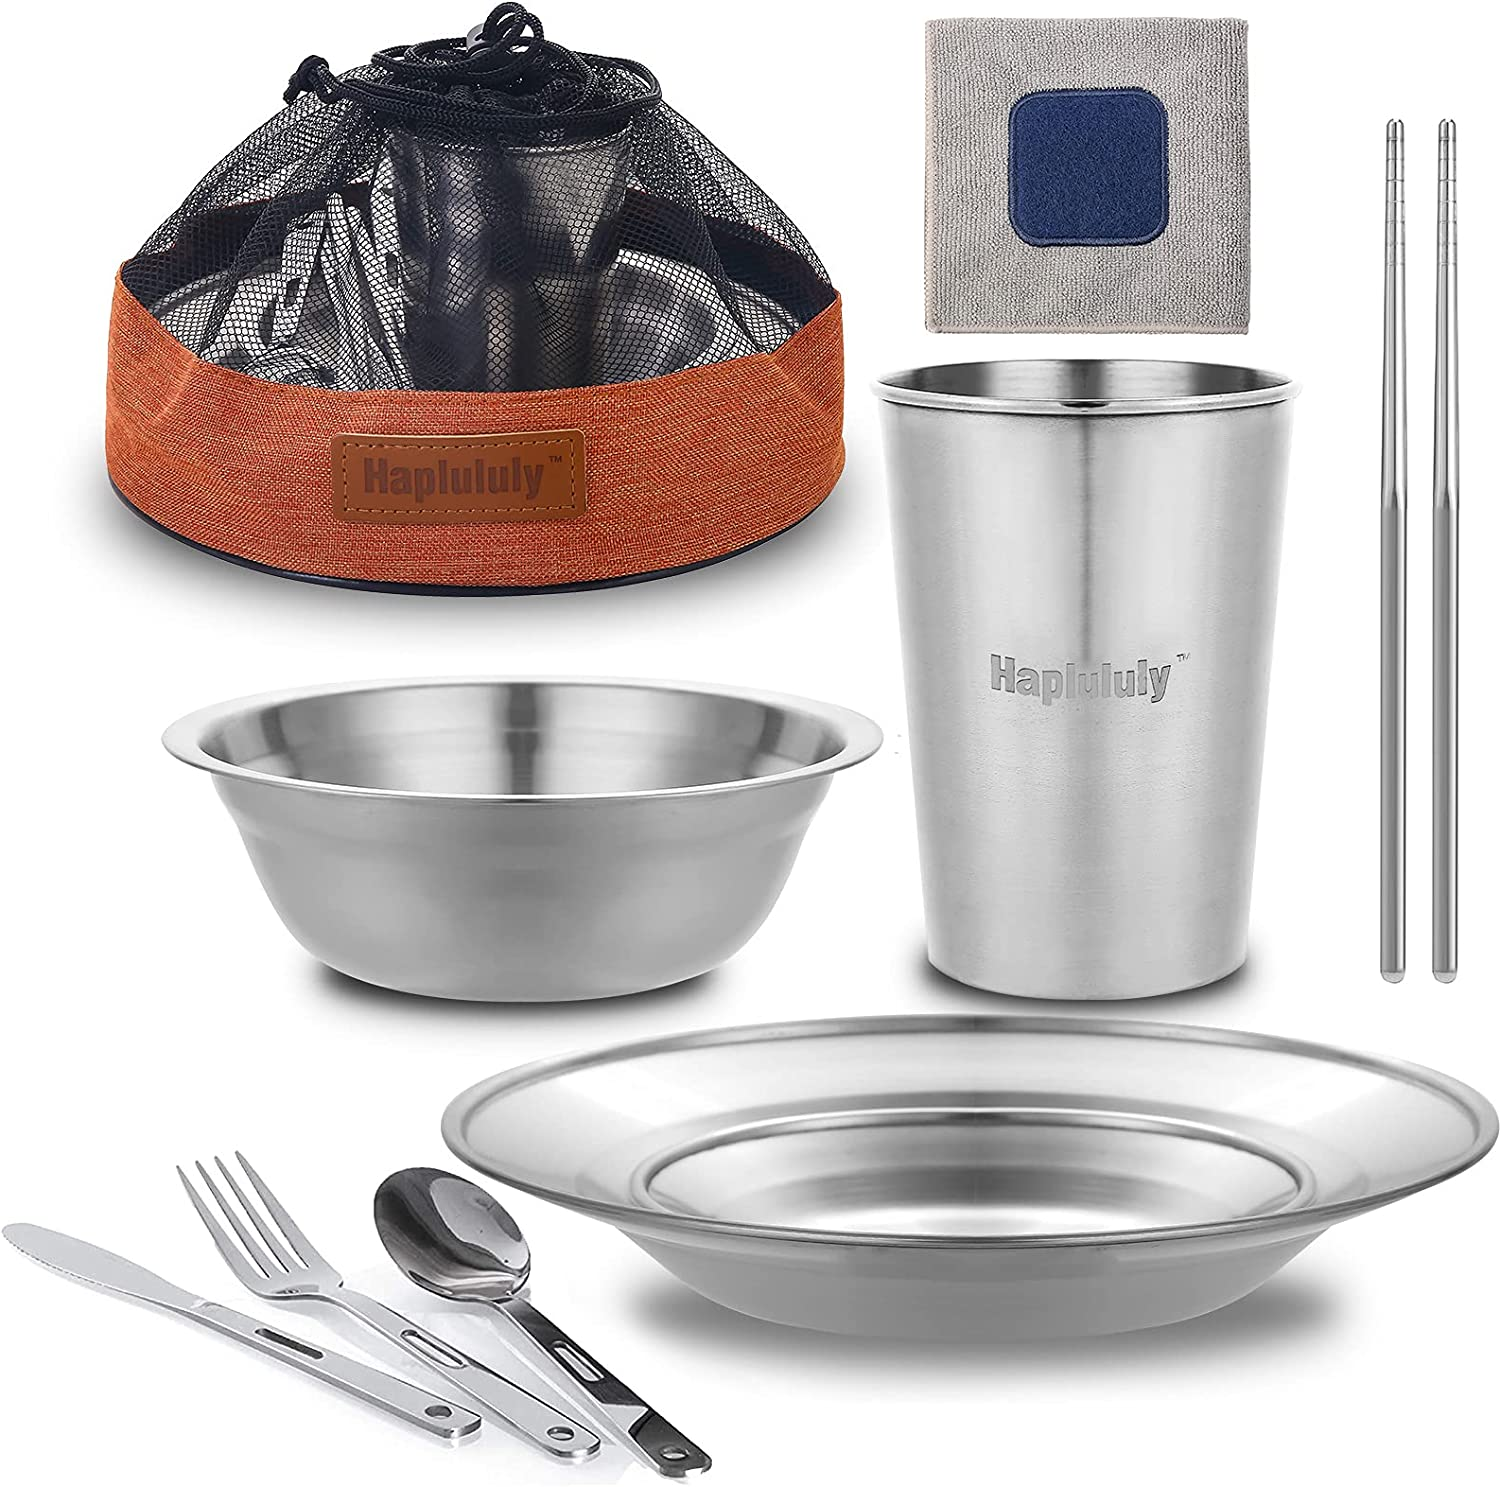 Camping utensils and dishes Max 87% OFF Jacksonville Mall Polished Stainless Steel Dishes Set